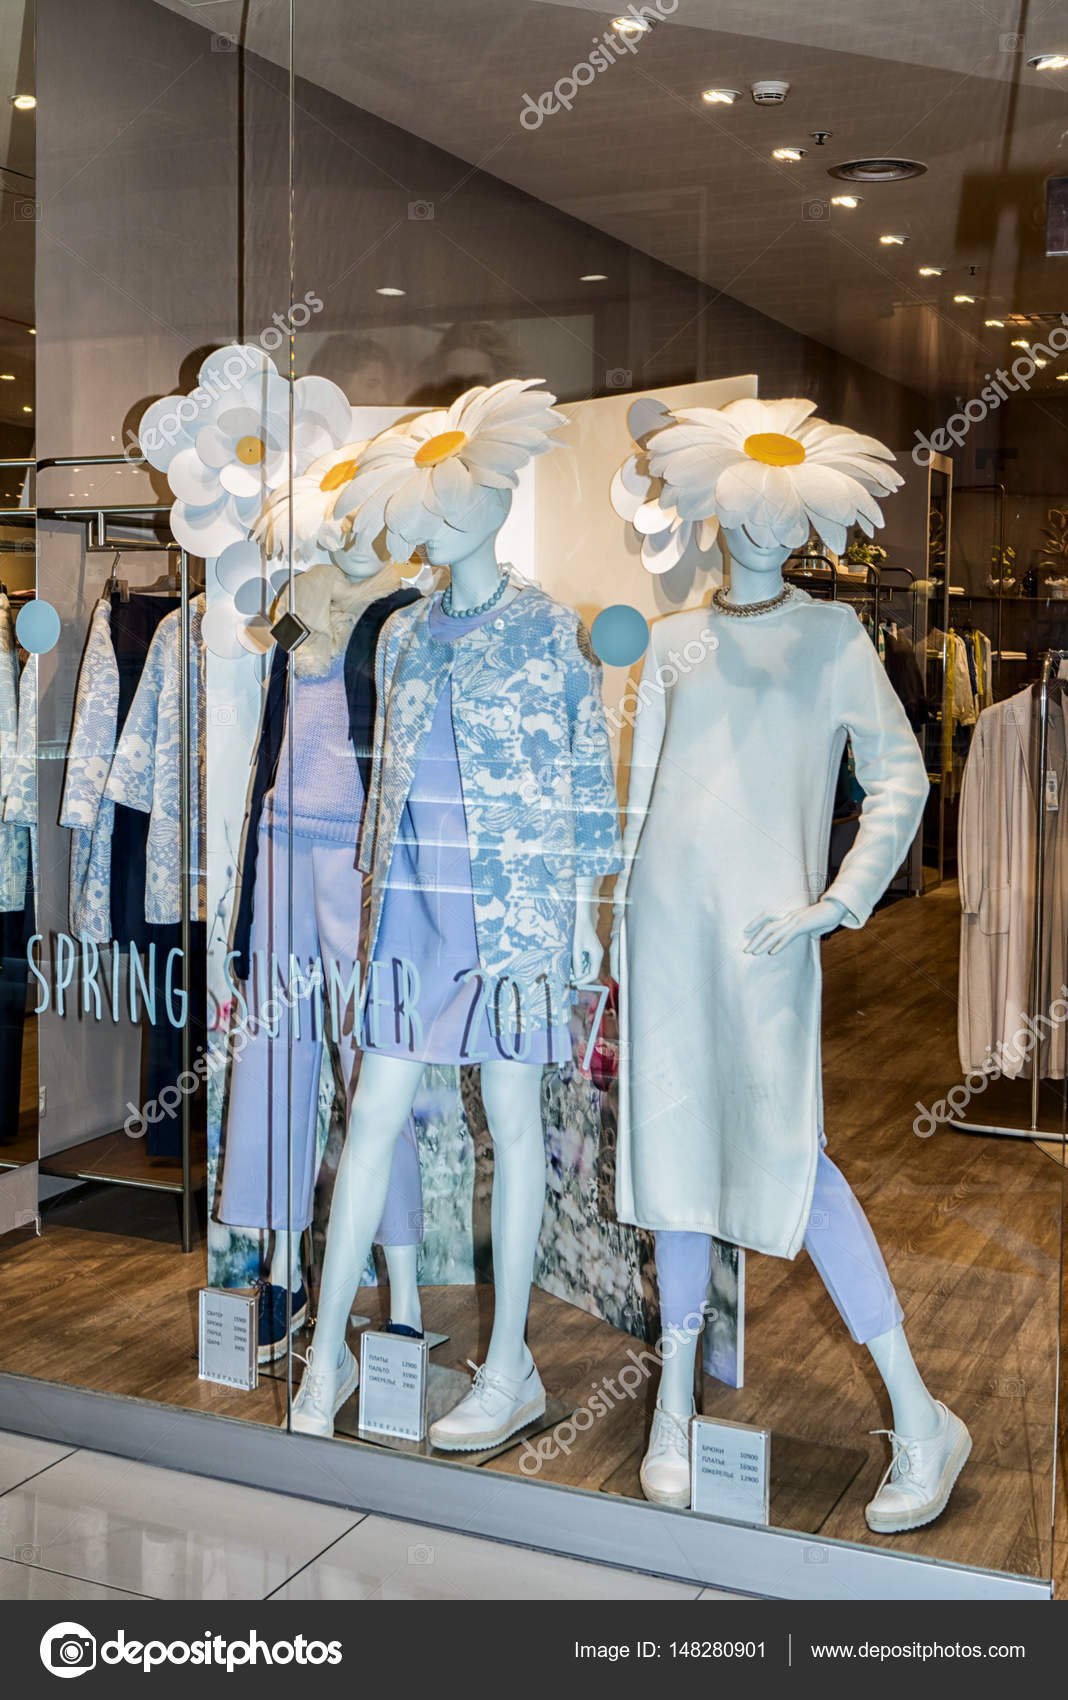 494f879f5ffdd Moscow, Russia - April 02, 2017: Shop window of a Stefanel fashion store